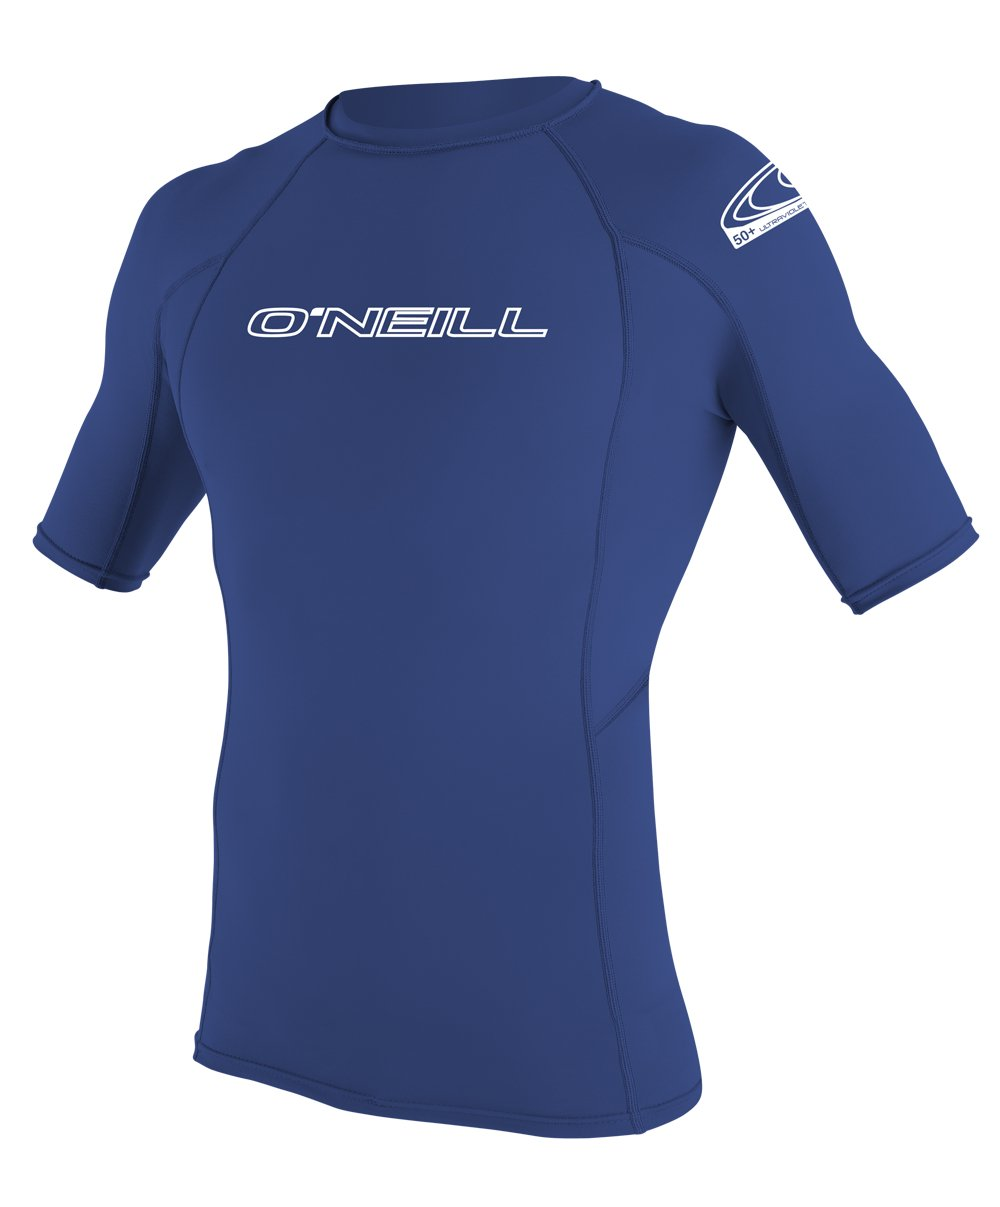 O'Neill Wetsuits Men's Basic Skins UPF 50+ Short Sleeve Rash Guard, Pacific, Large by O'Neill Wetsuits